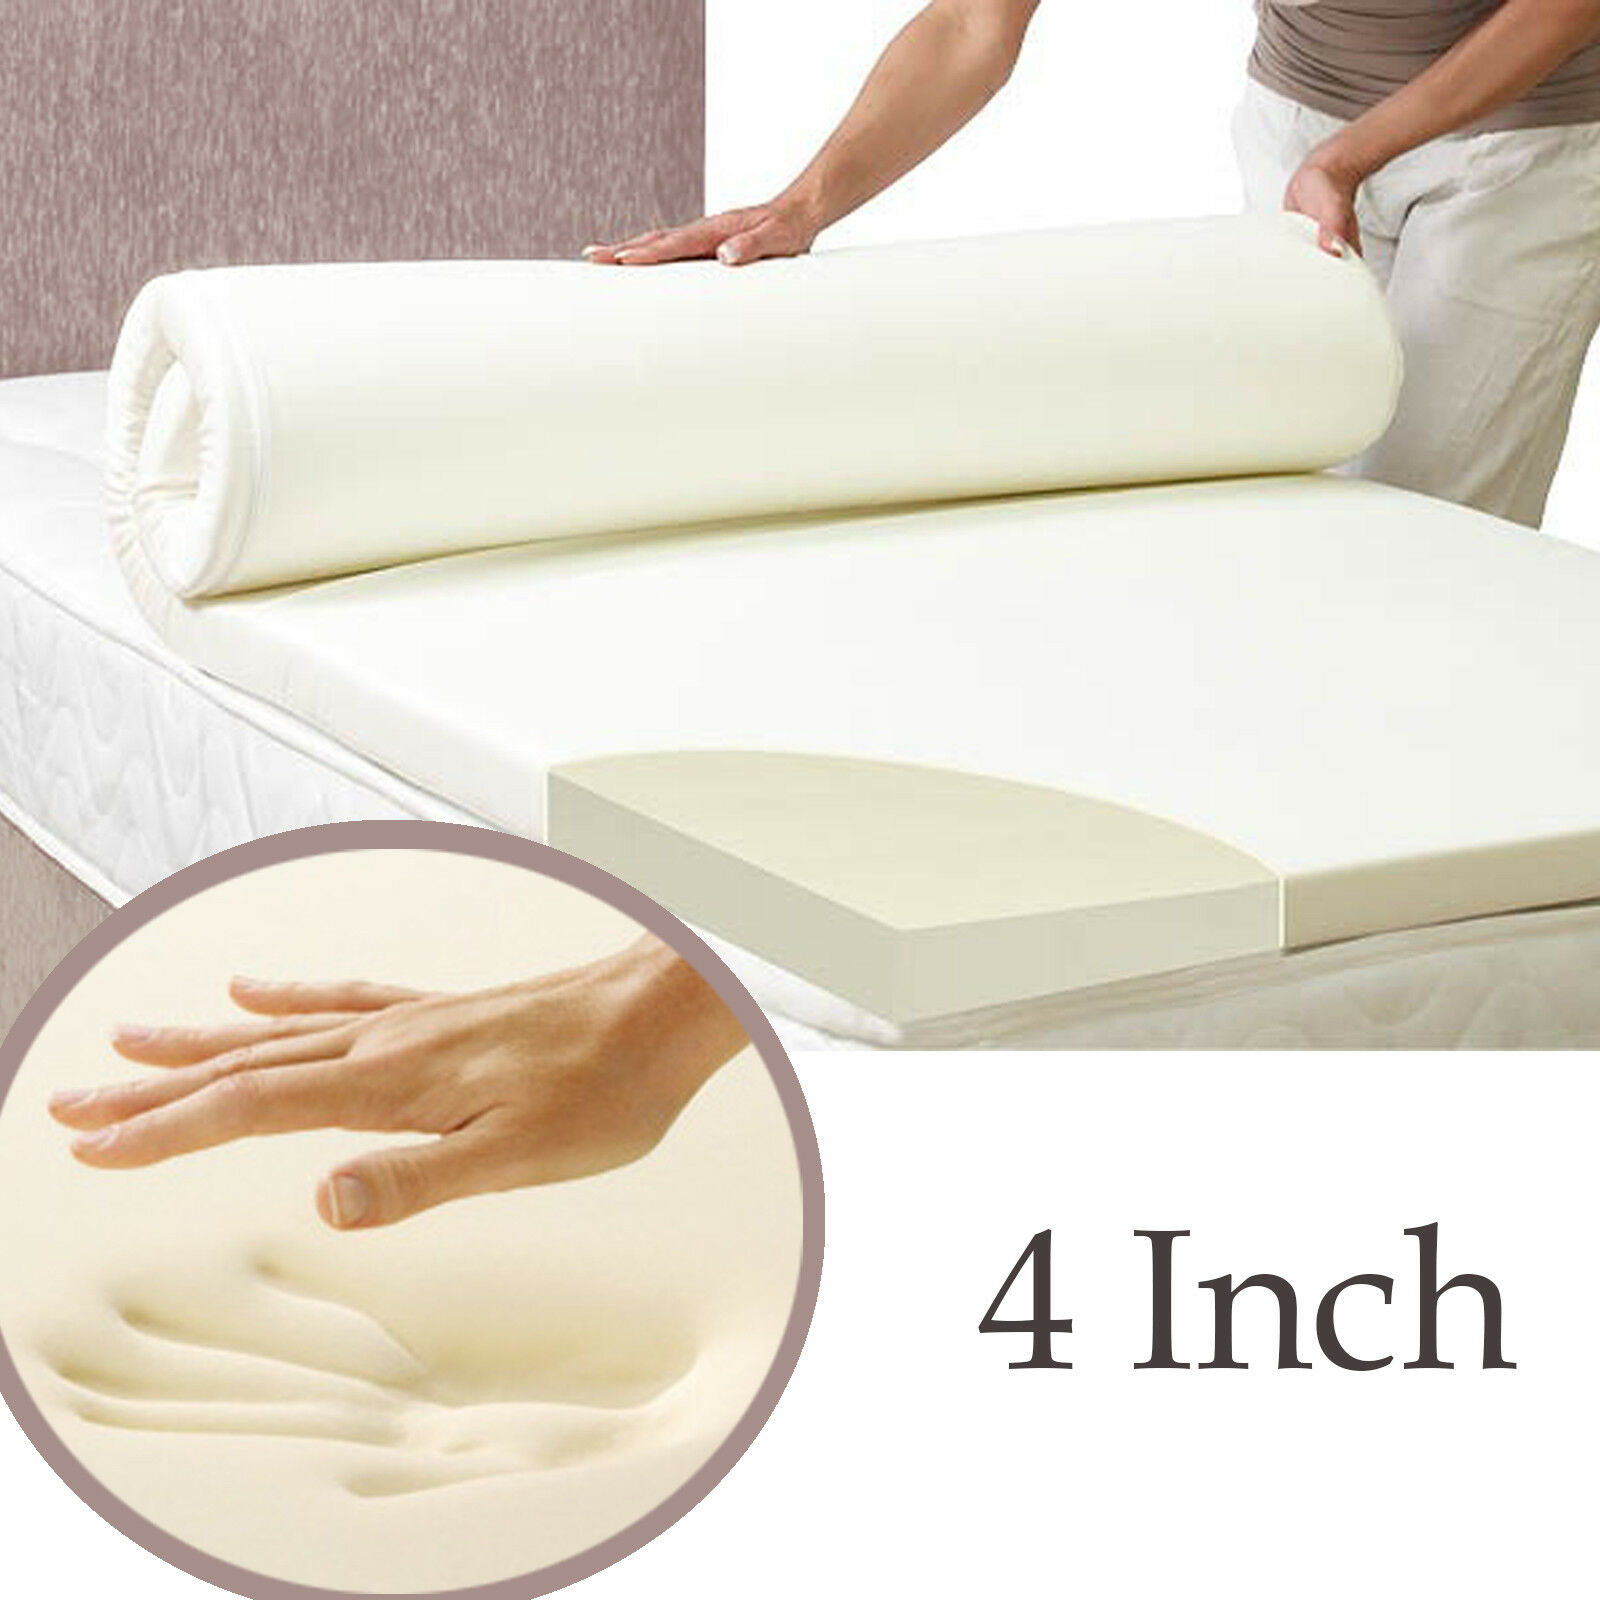 6FT SUPER KINGGröße MEMORY FOAM FOAM FOAM TOPPER WITH COOLTOUCH COVER CHOICE OF DEPTH a2e82d